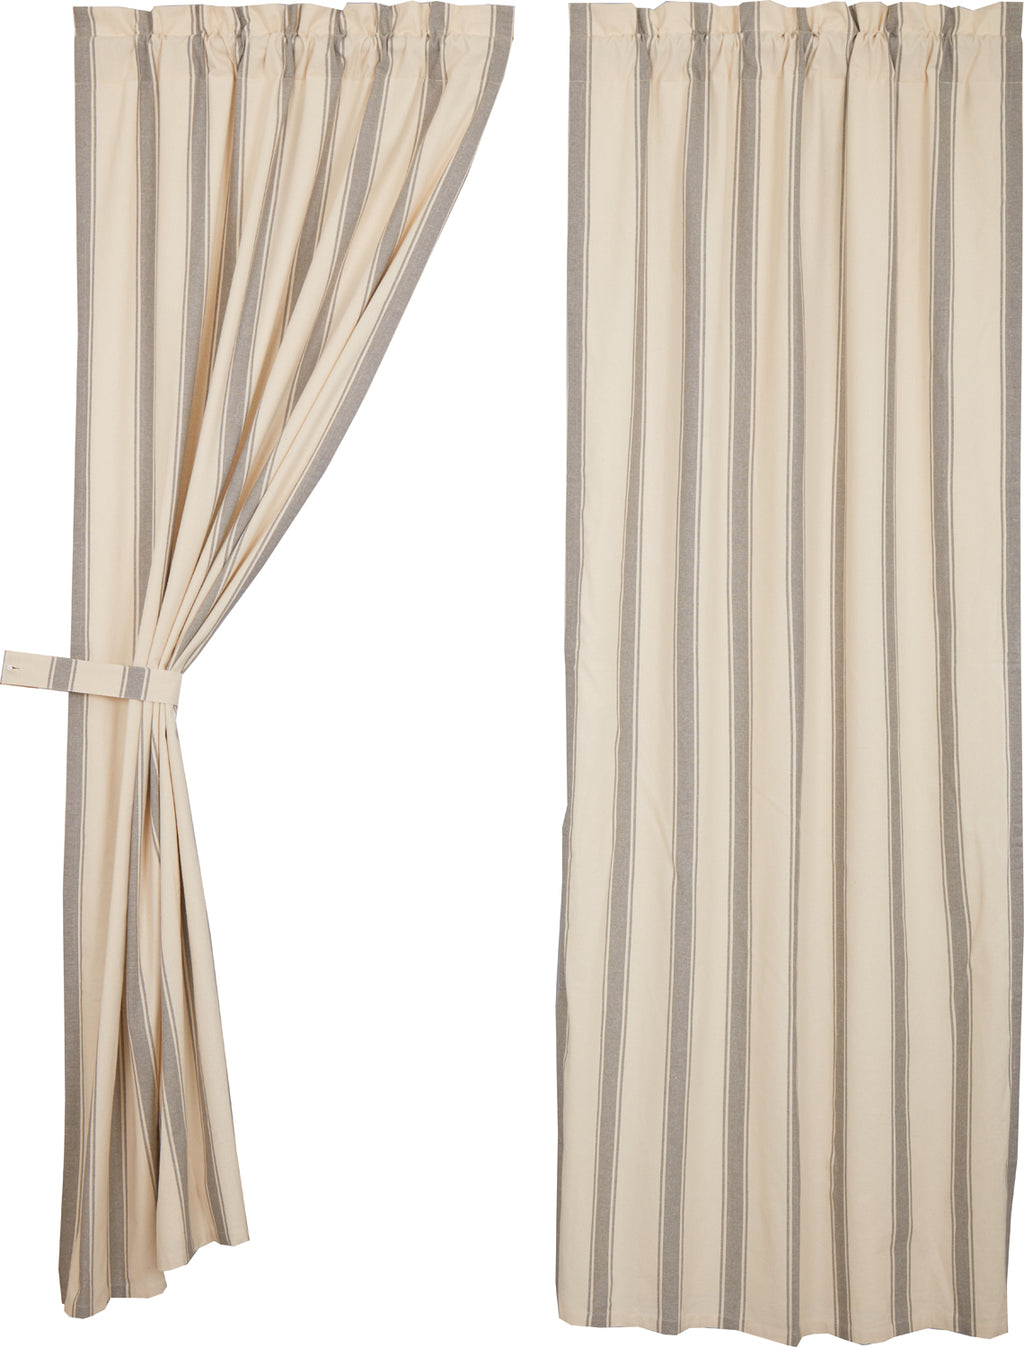 Grace Grain Sack Stripe Panel Set of 2 84x40